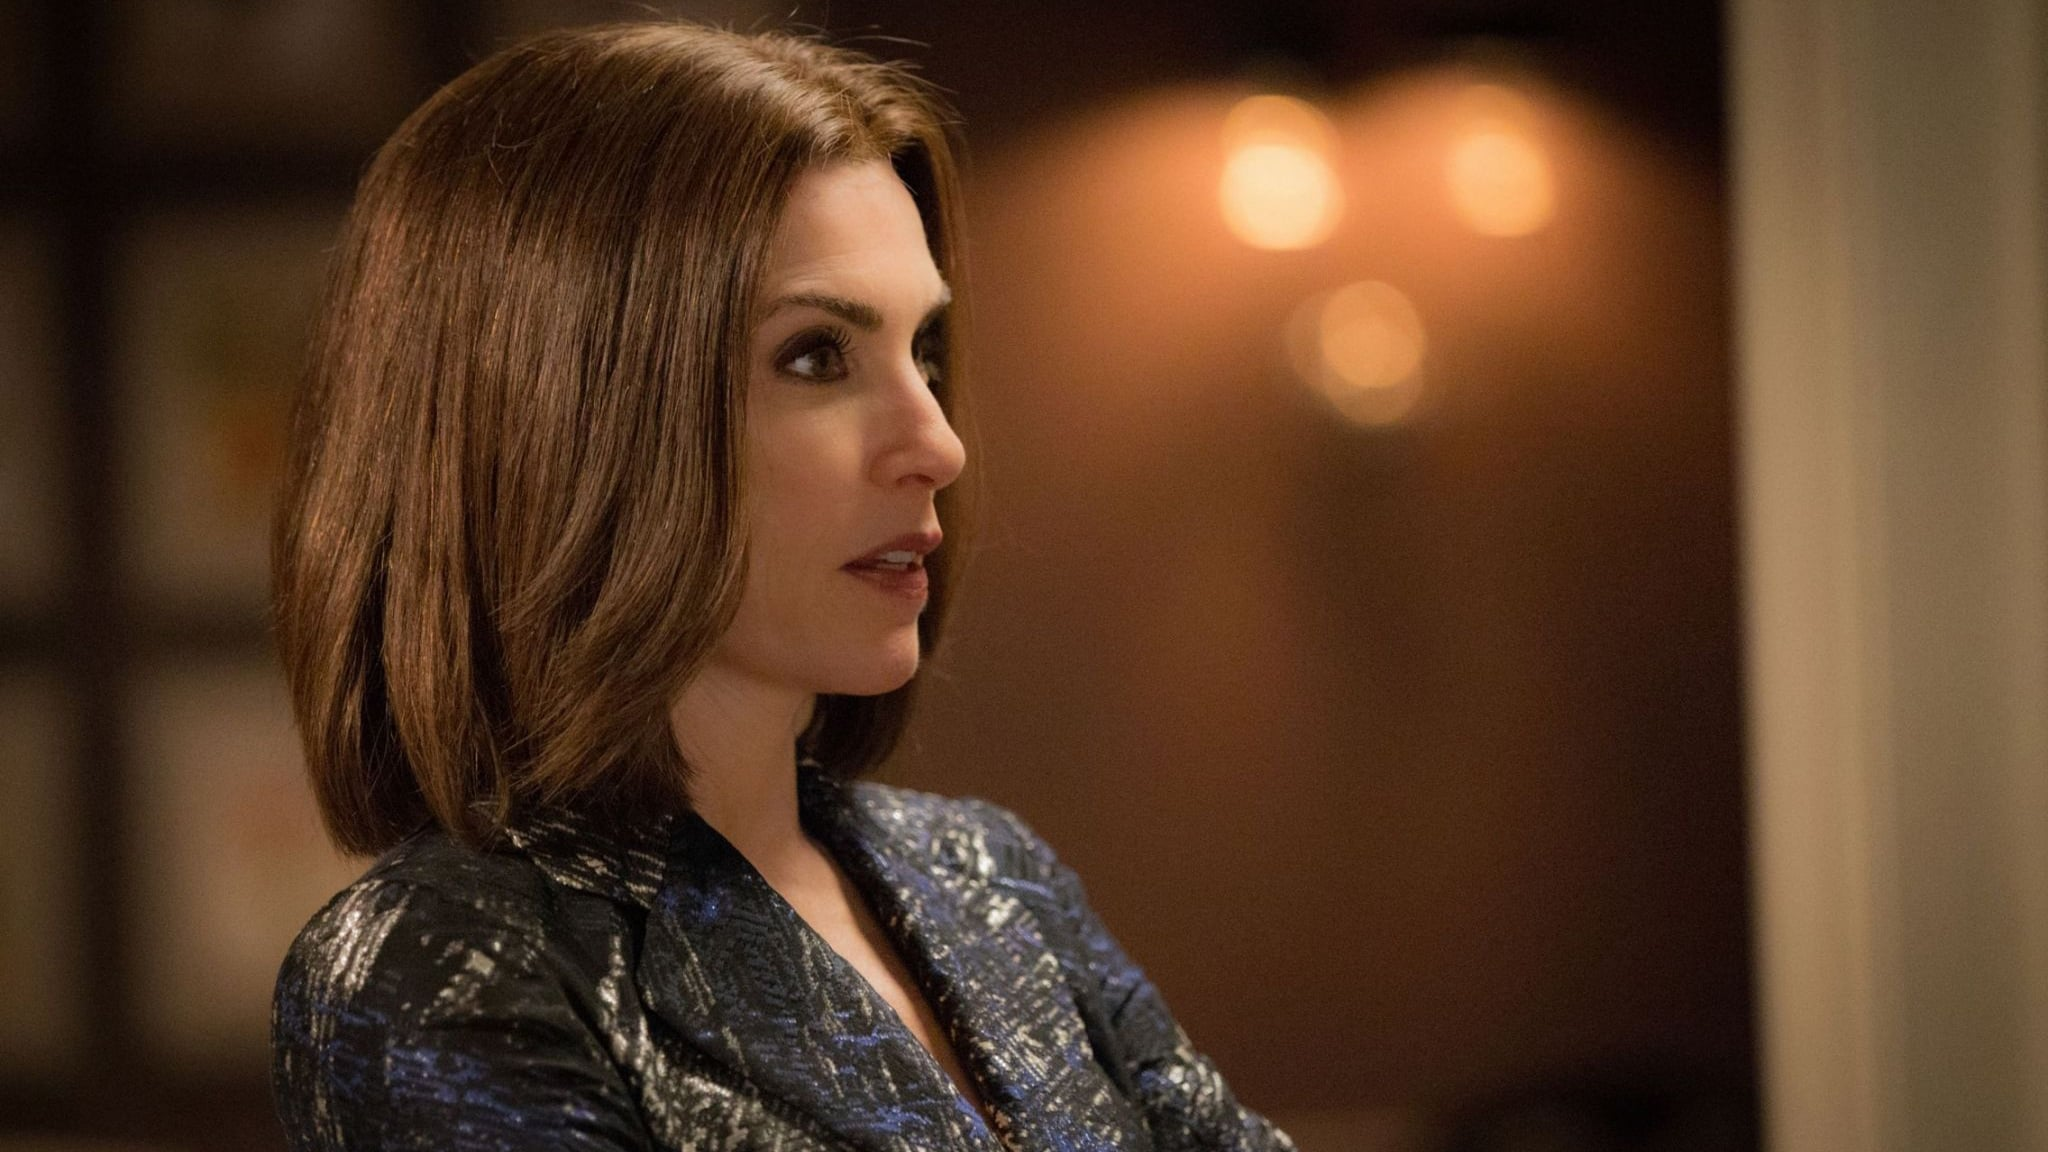 The Good Wife Bad Girls Clip On Vimeo